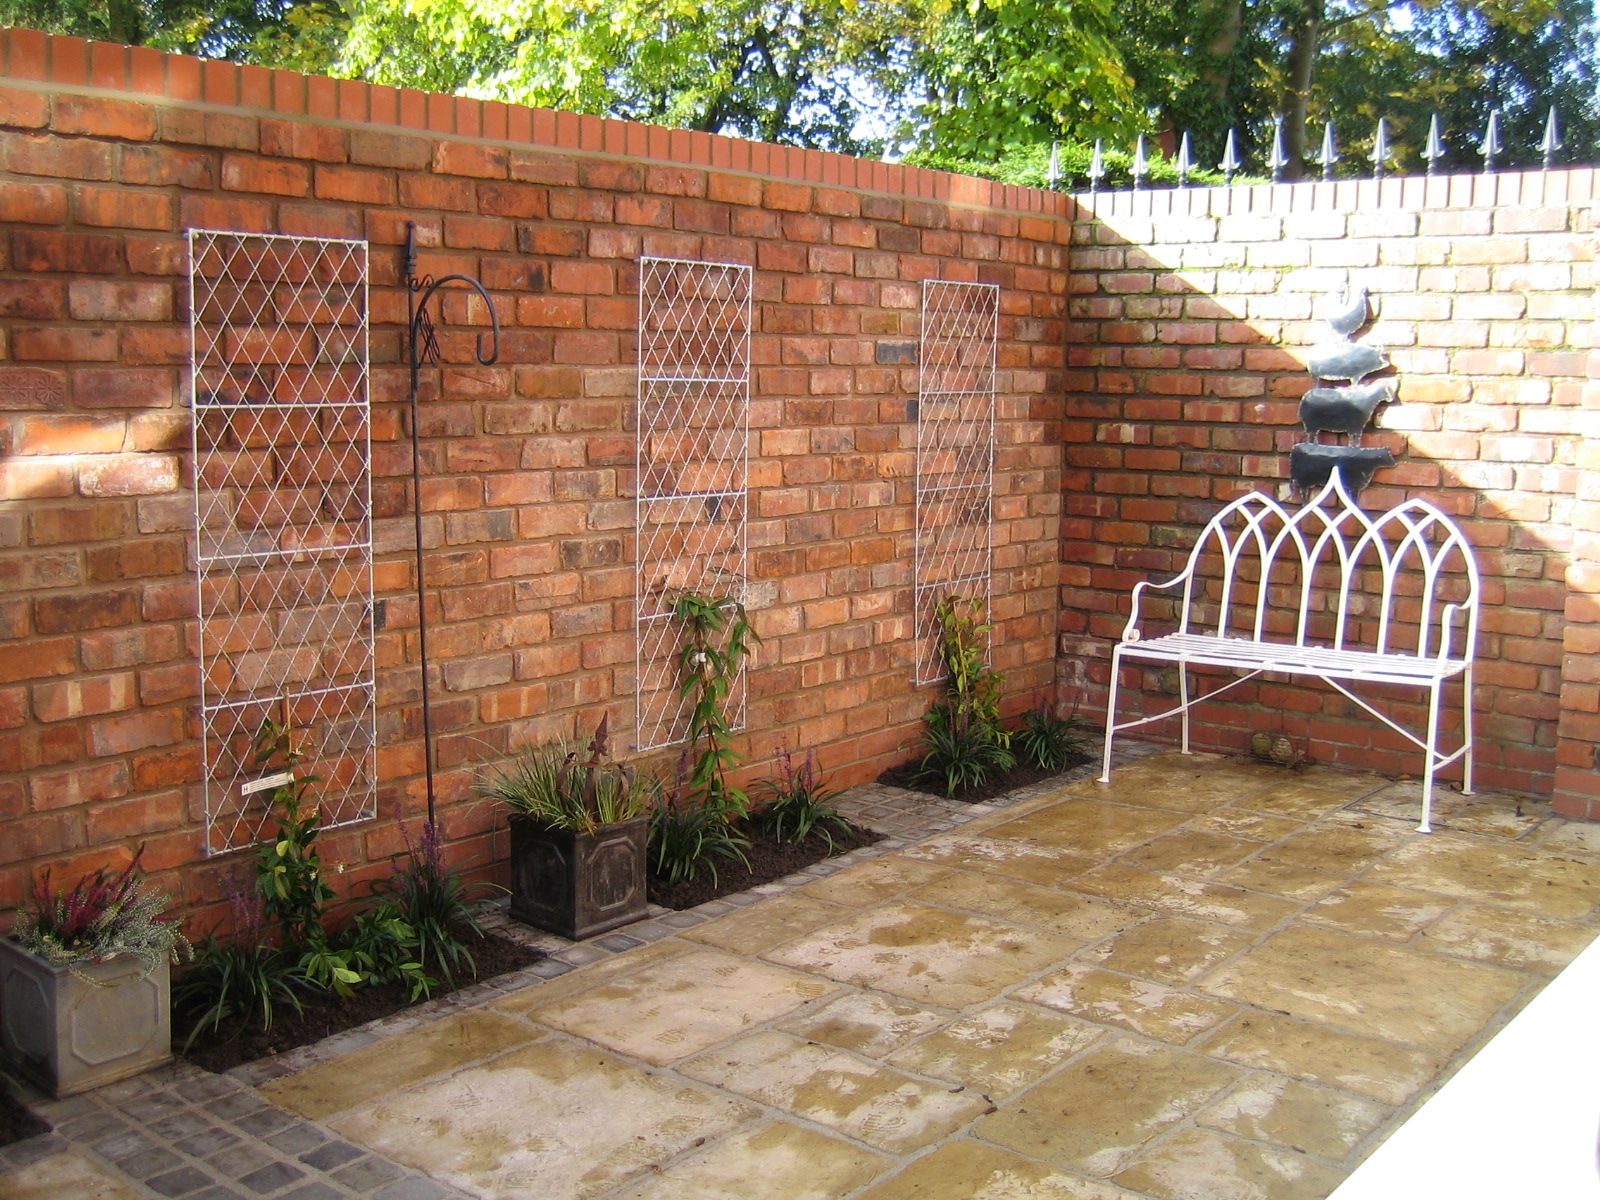 Reclaimed brick walls in a small courtyard garden from a for Garden wall designs